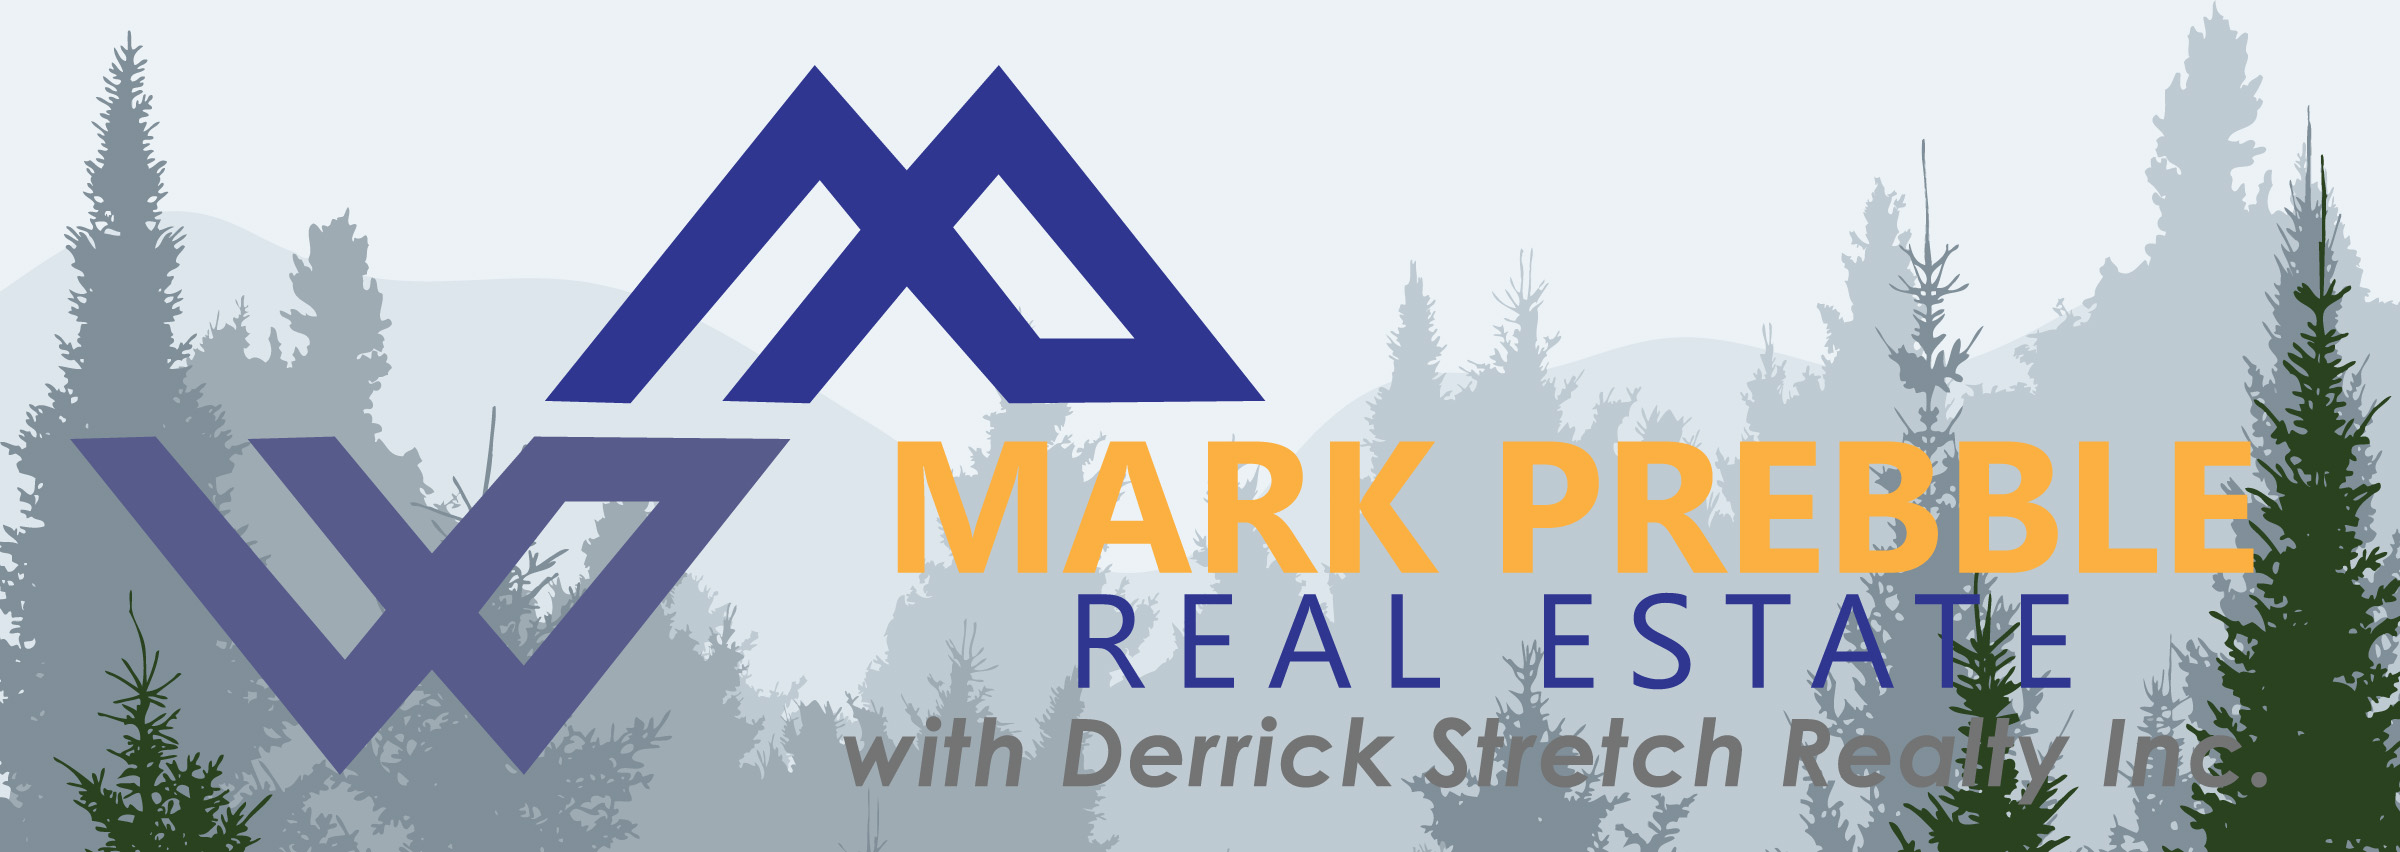 Mark Prebble logo